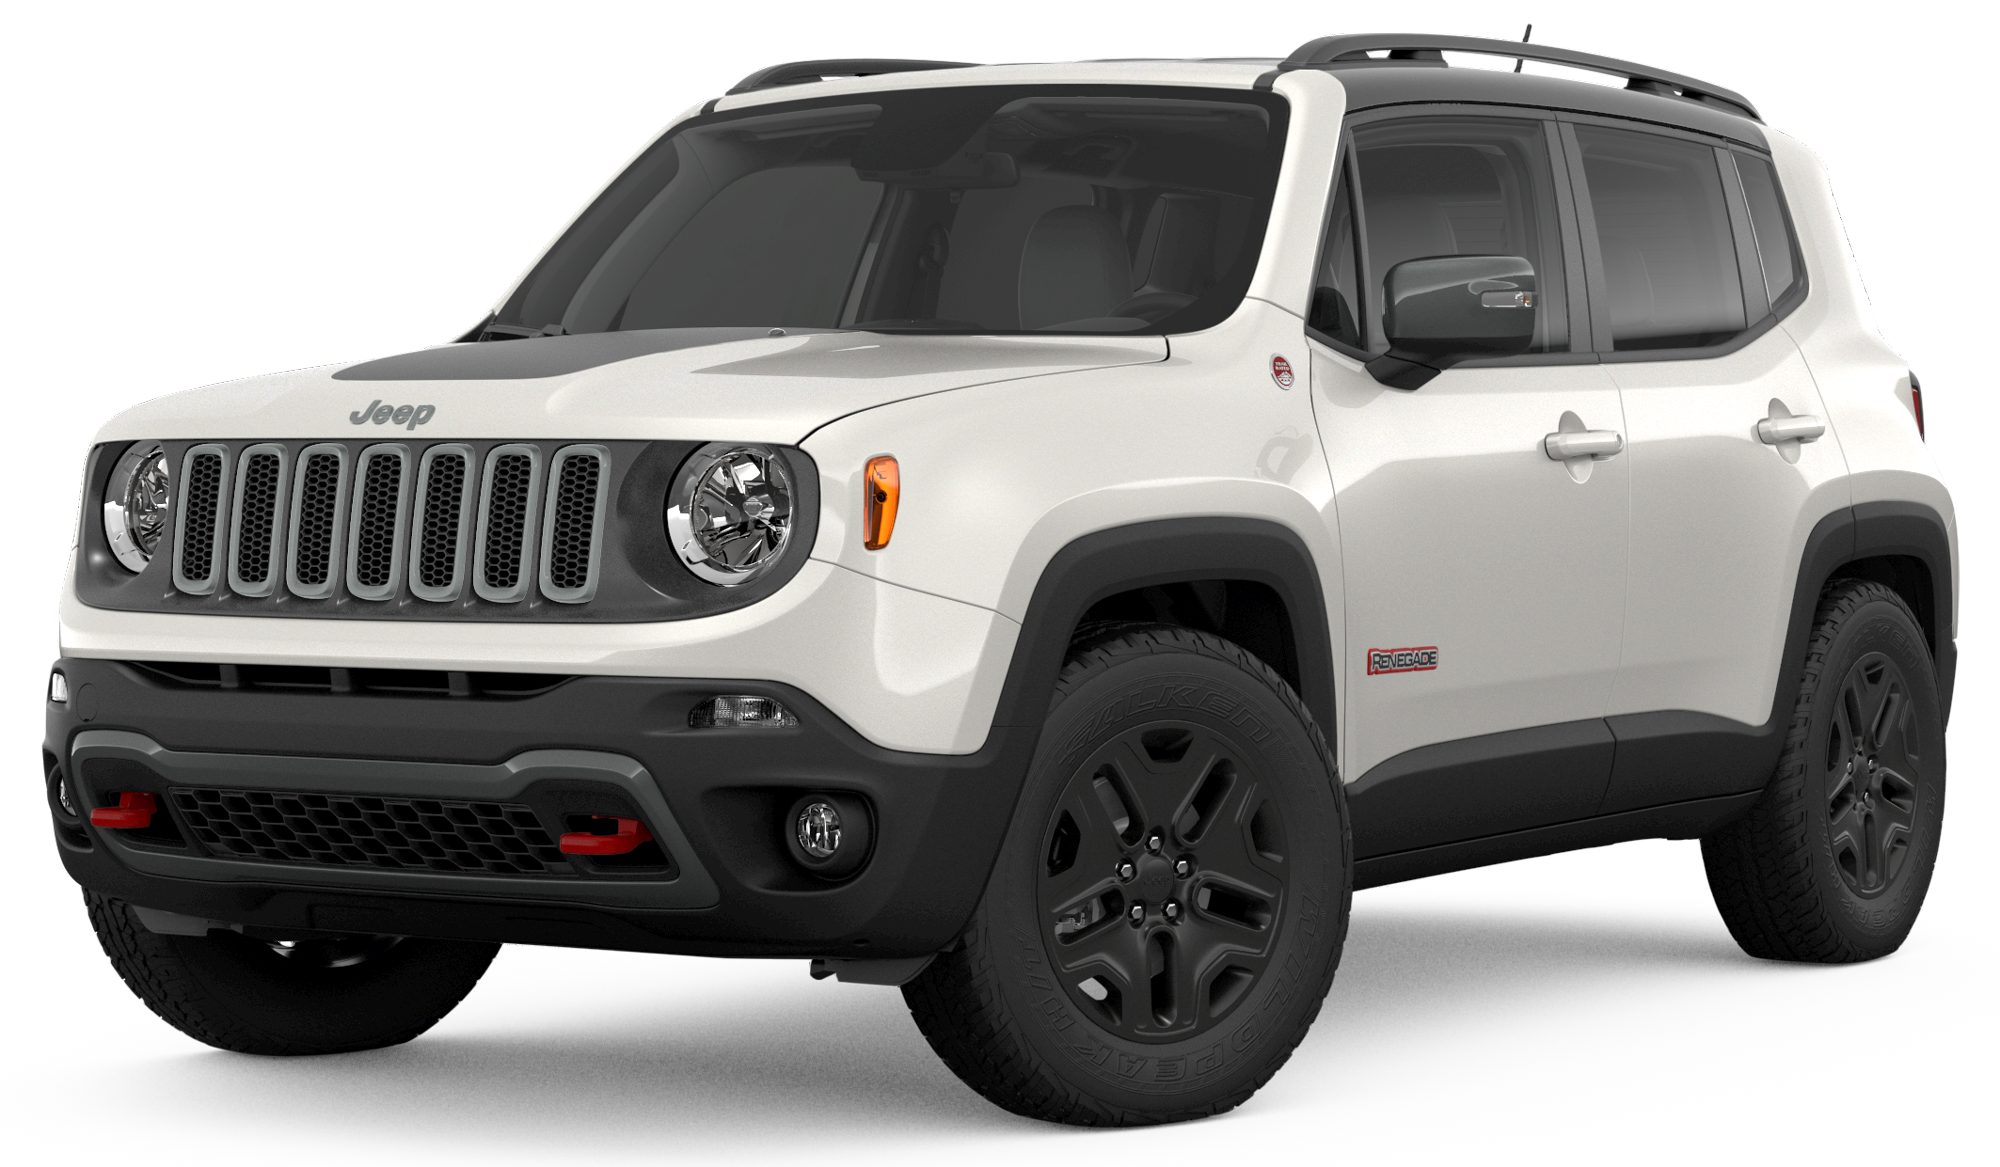 Review & Compare Jeep Renegade at Larry H. Miller Chrysler Jeep Tucson